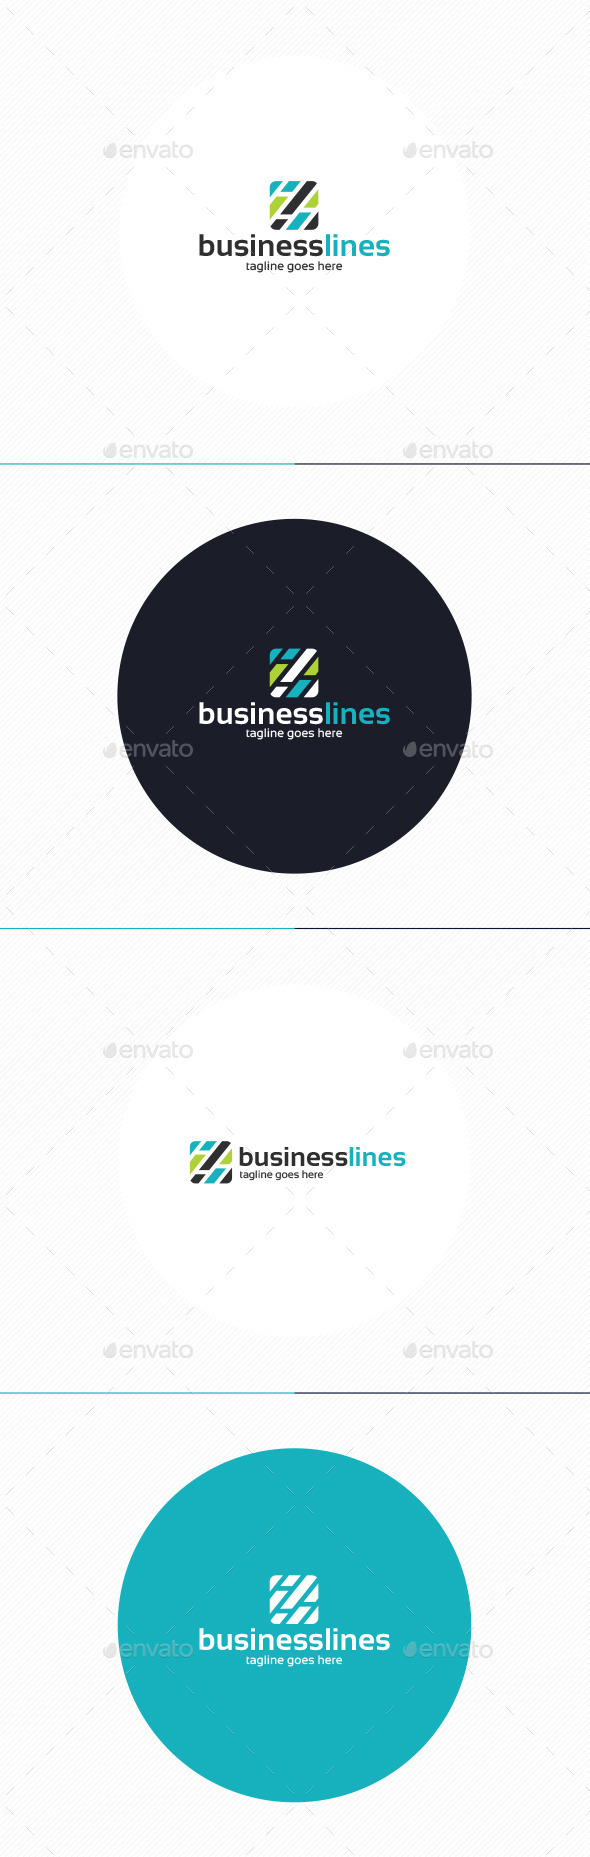 GraphicRiver Business Lines Logo 10919964